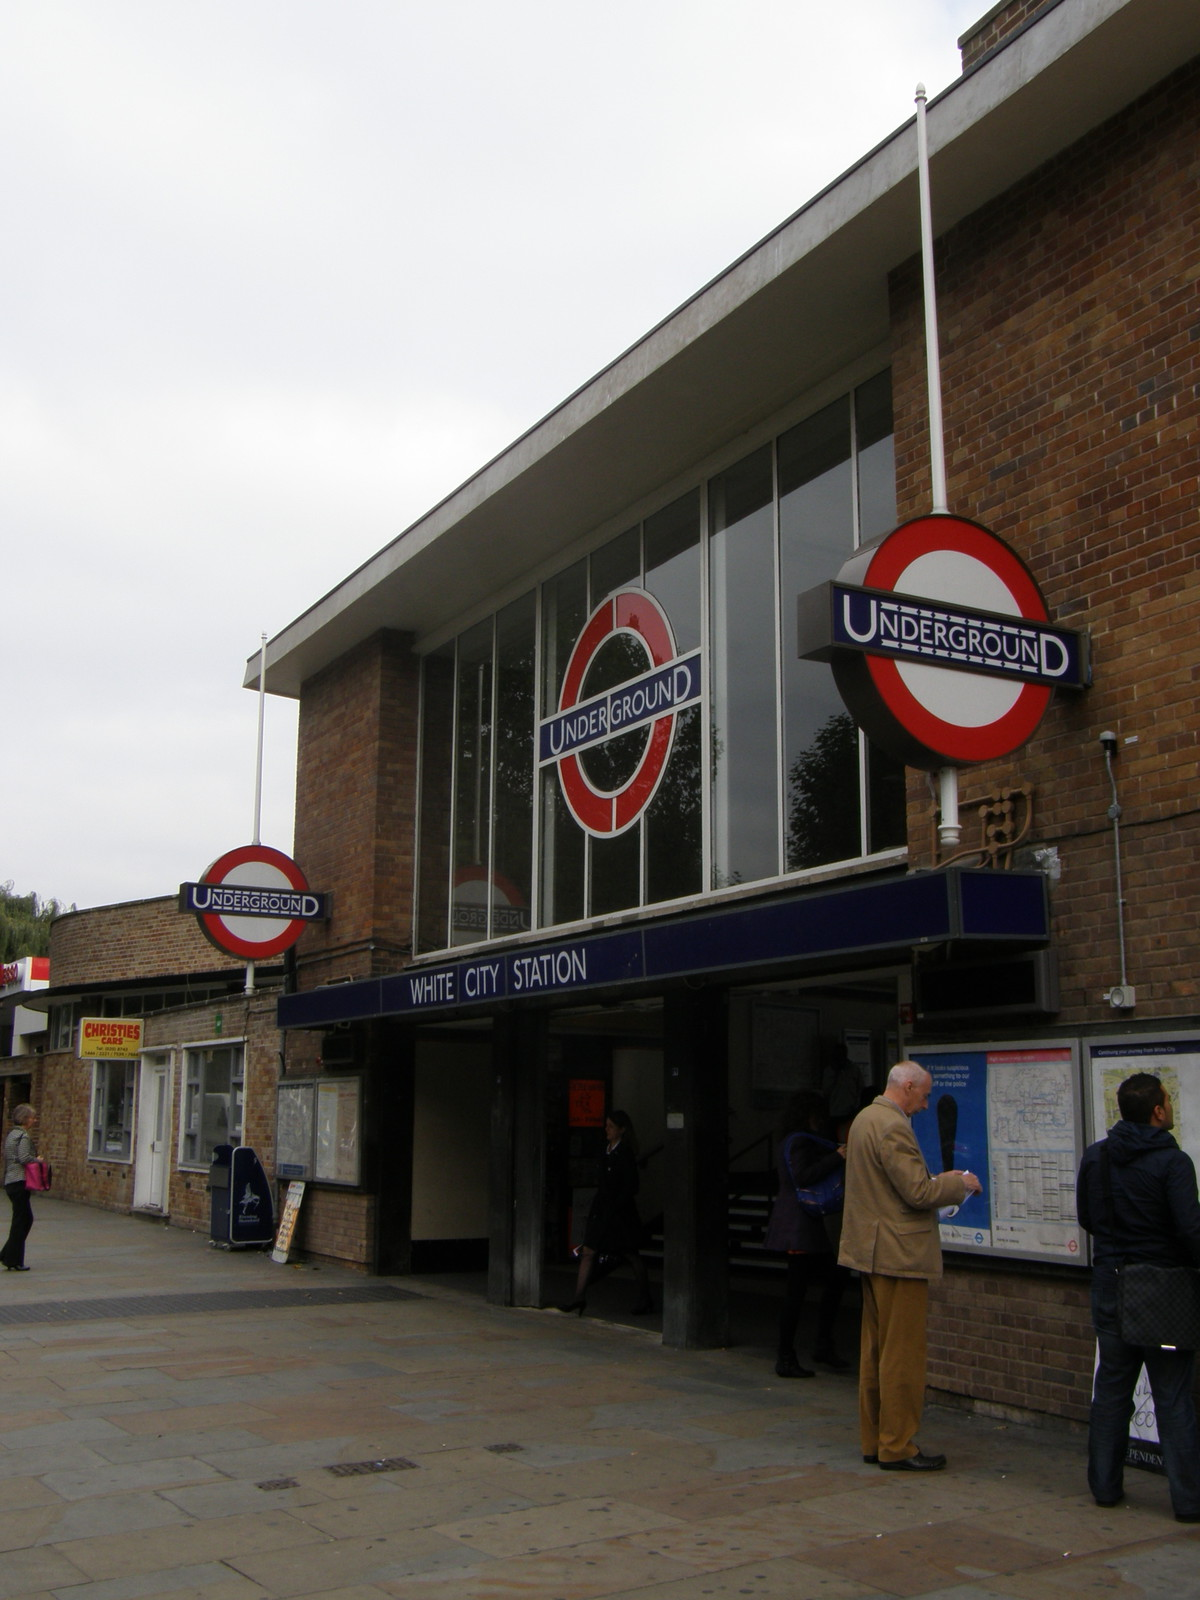 White City station